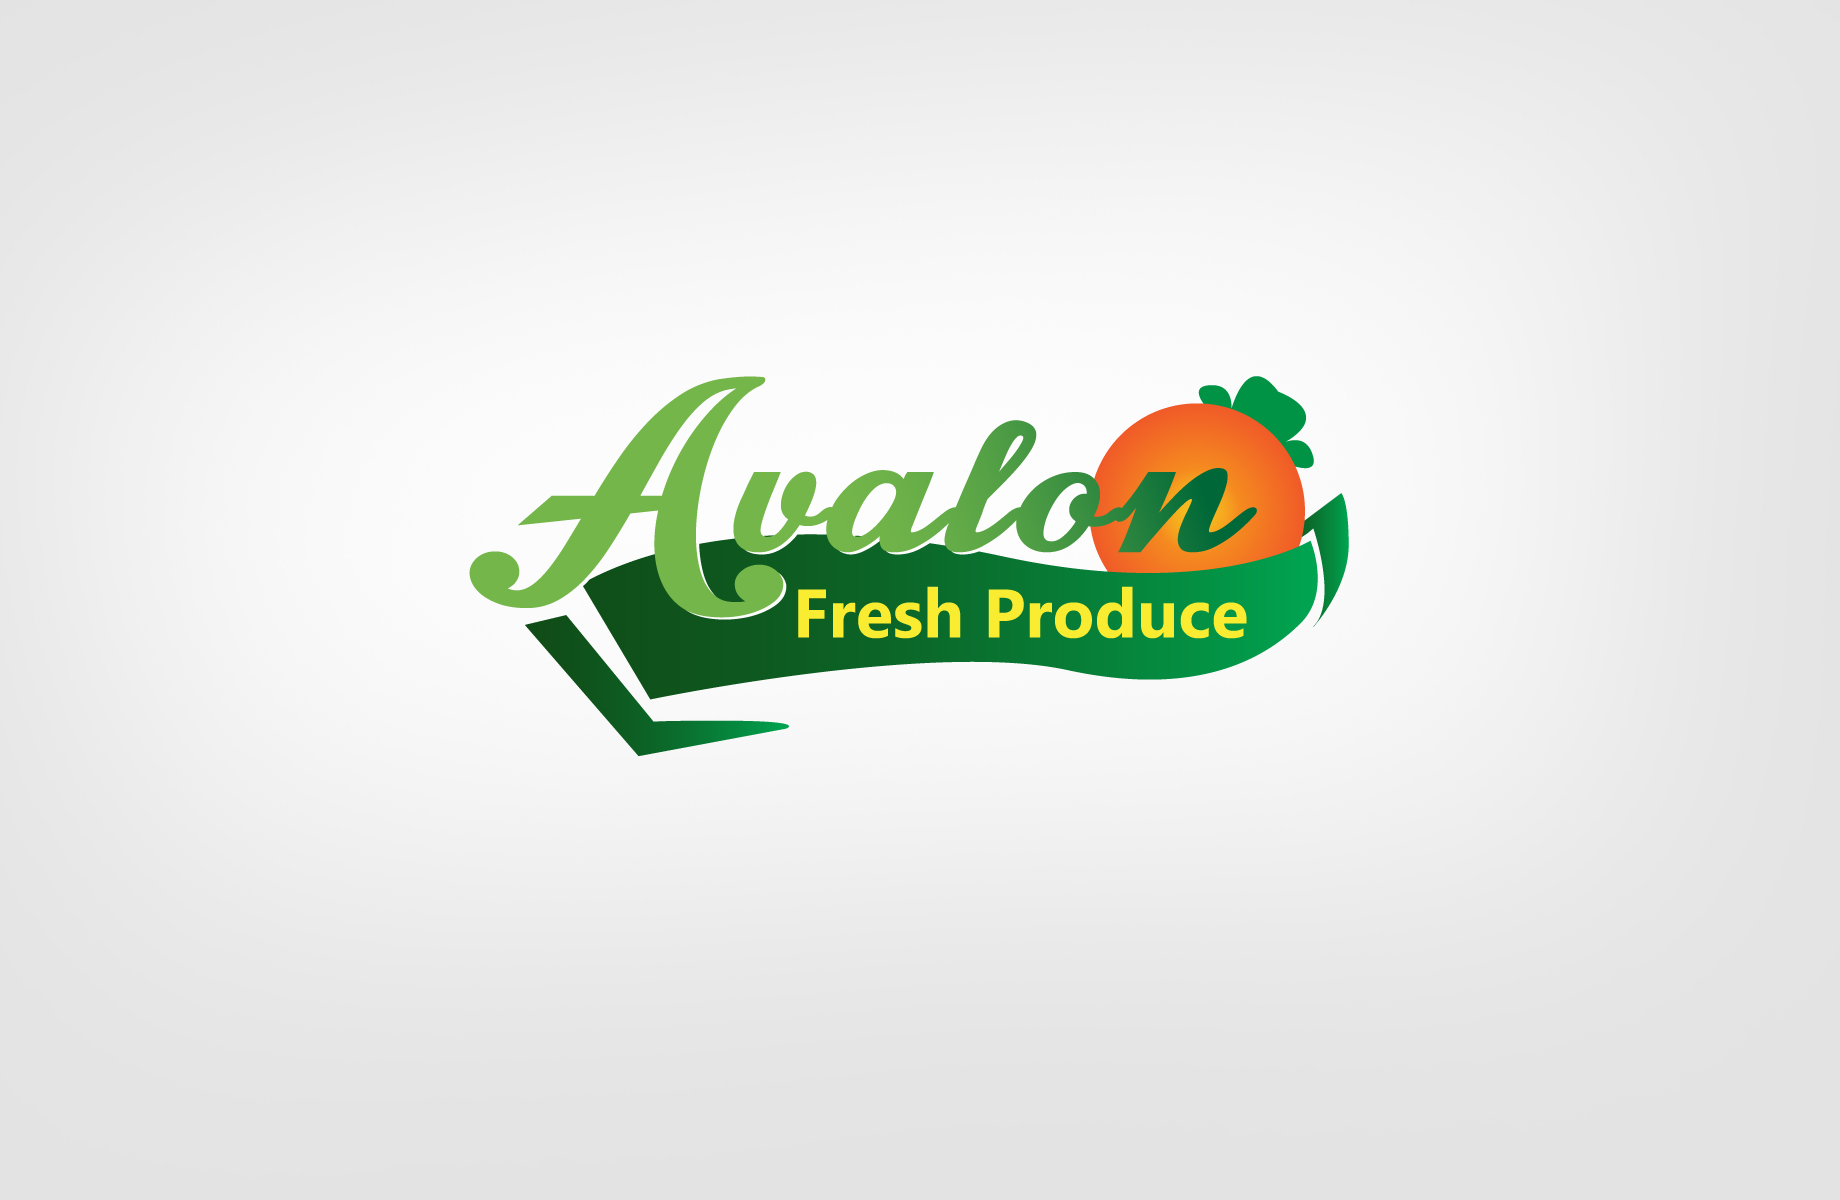 Logo Design by Jan Chua - Entry No. 67 in the Logo Design Contest Unique Logo Design Wanted for Avalon Fresh Produce.